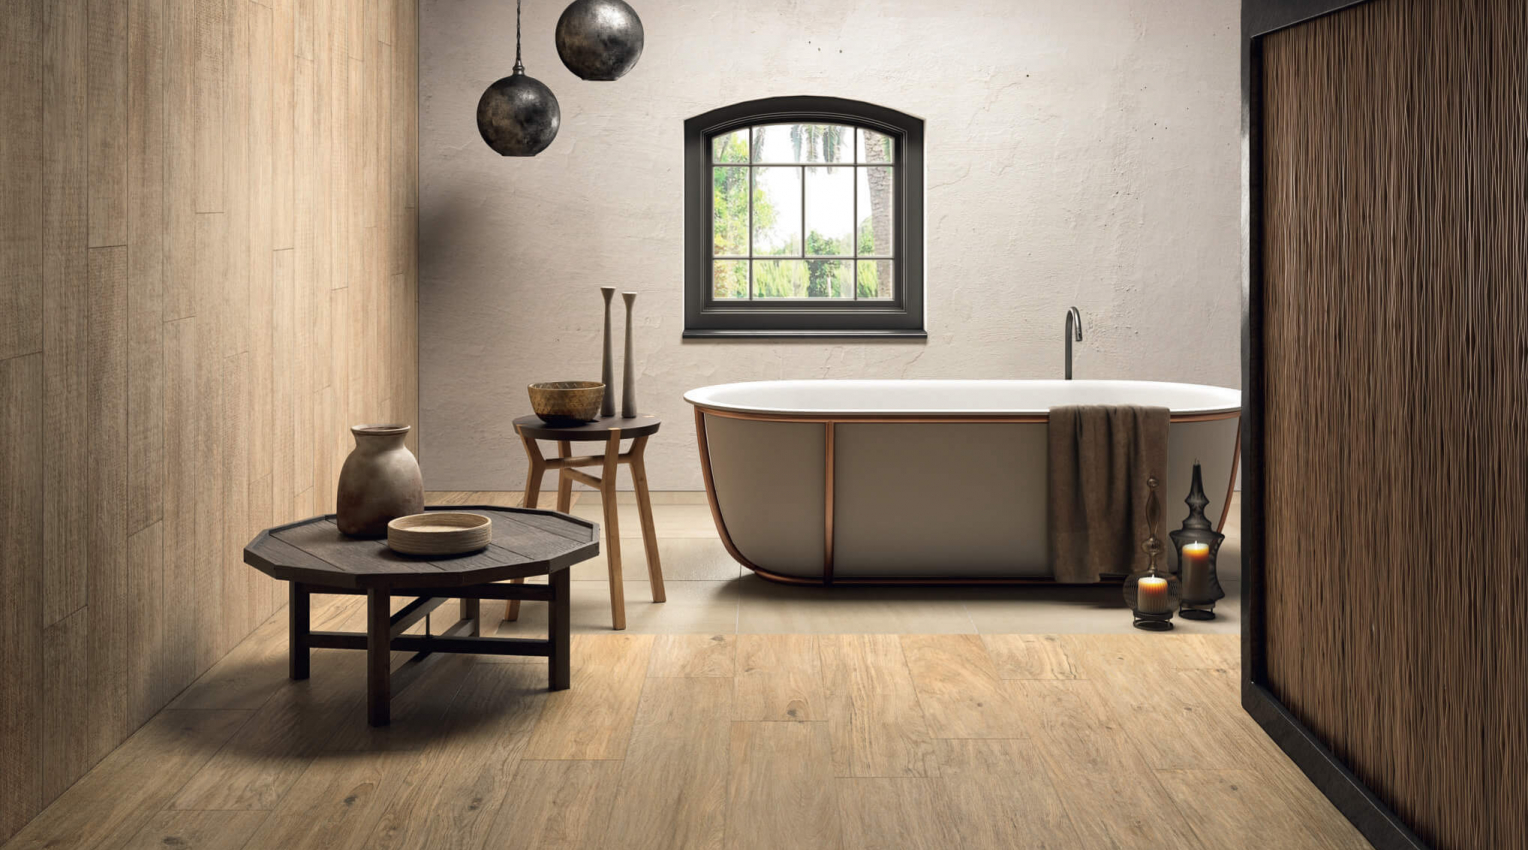 Bathroom Arthis Natural wood